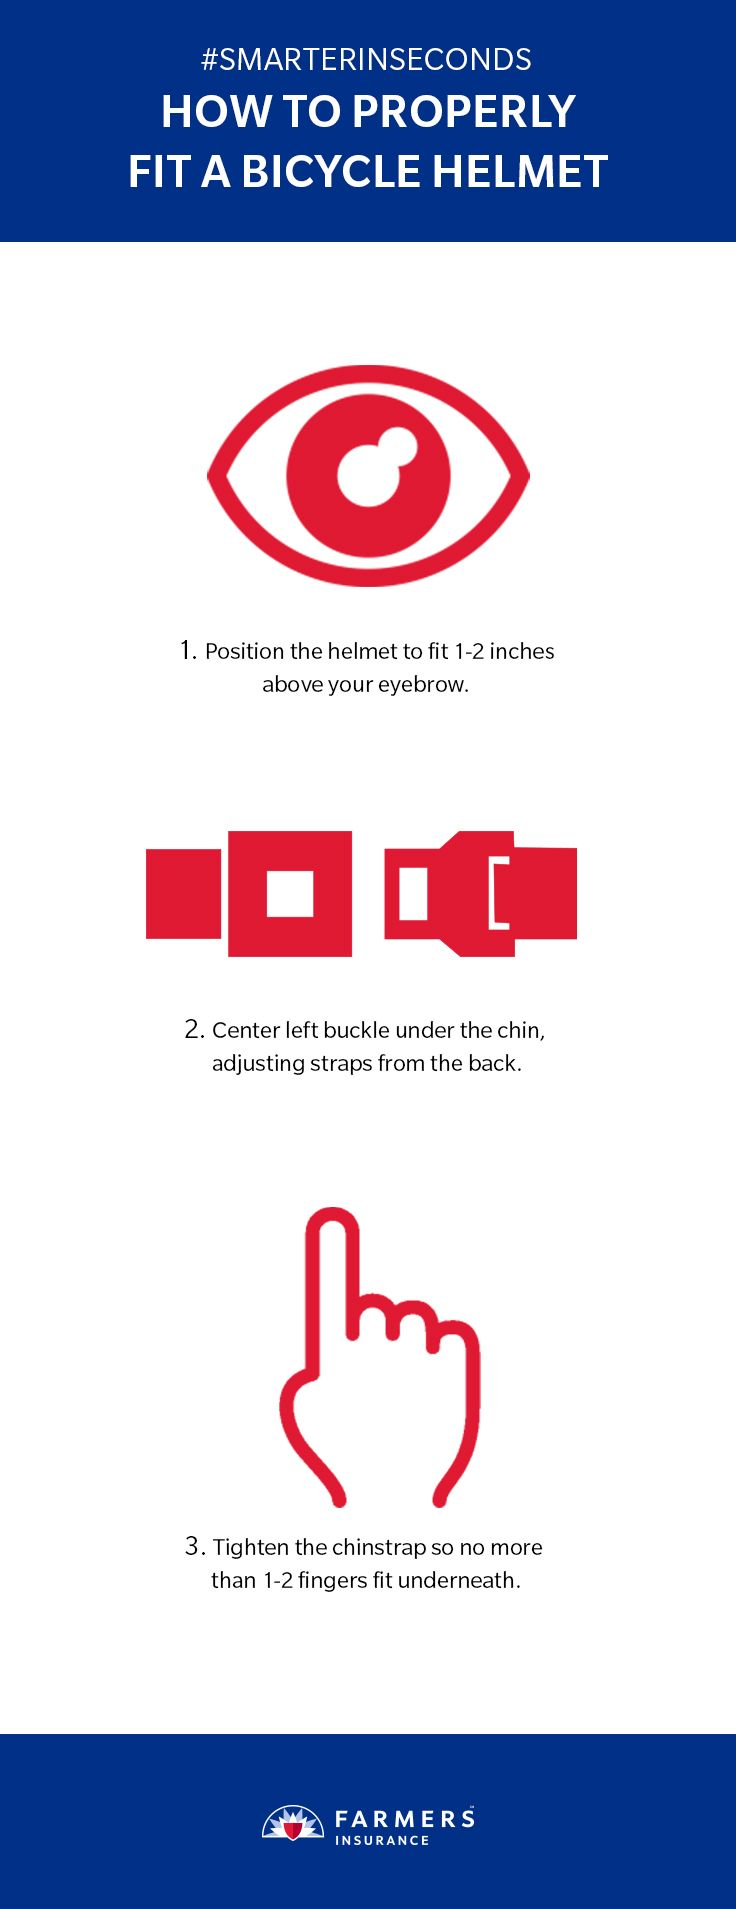 45 best images about Safety Tips from Farmers Insurance on ...